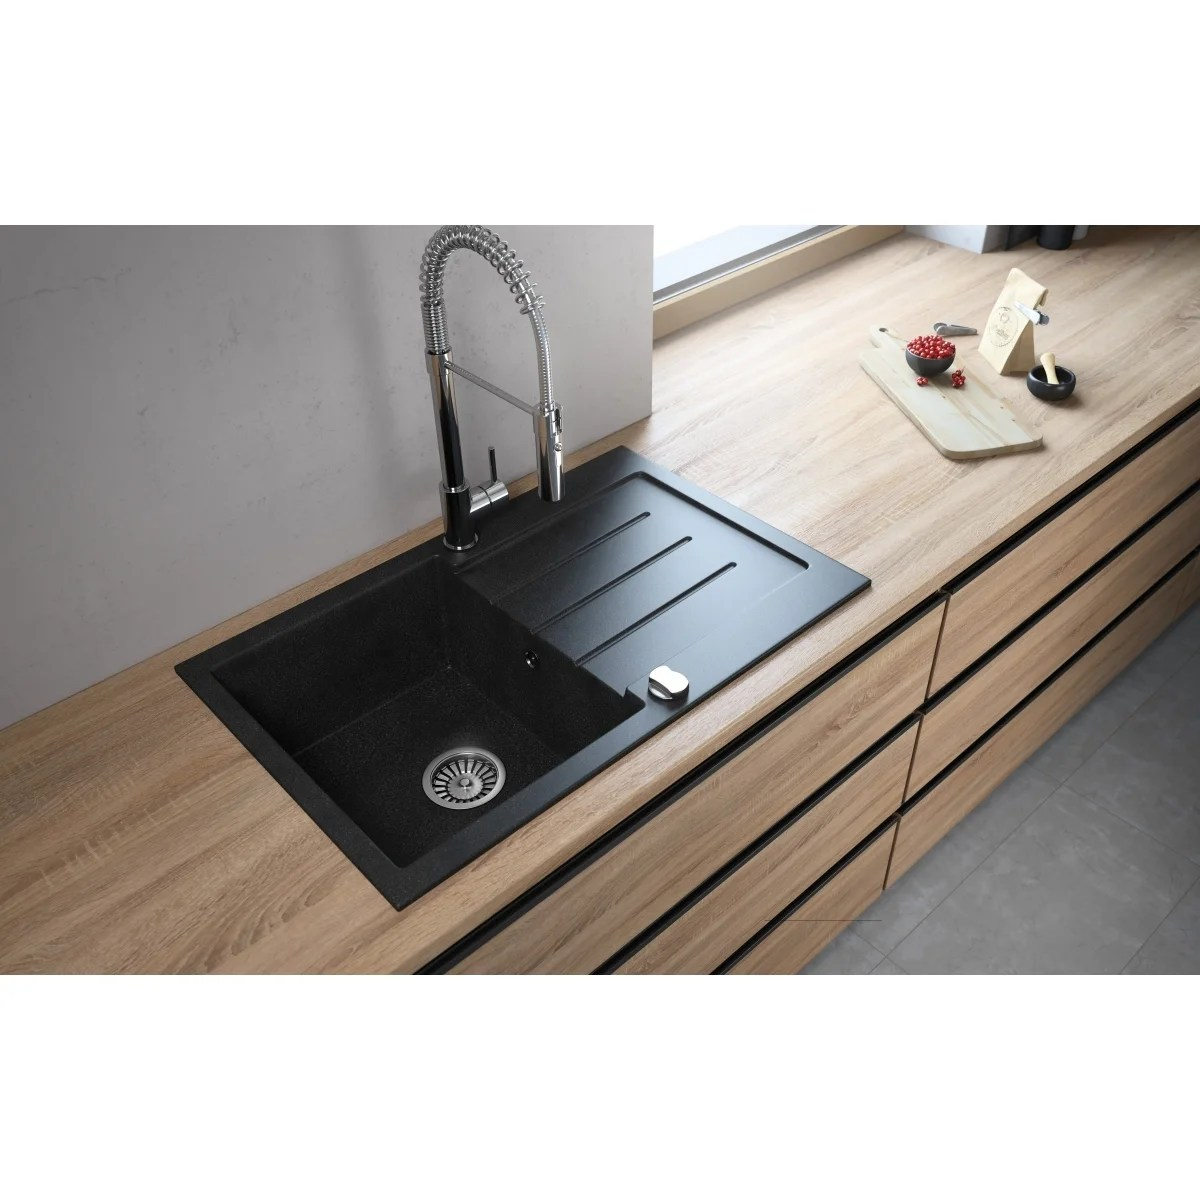 american lavello granite composite 31 drop in with drainboard single bowl kitchen sink onyx right 2 holes